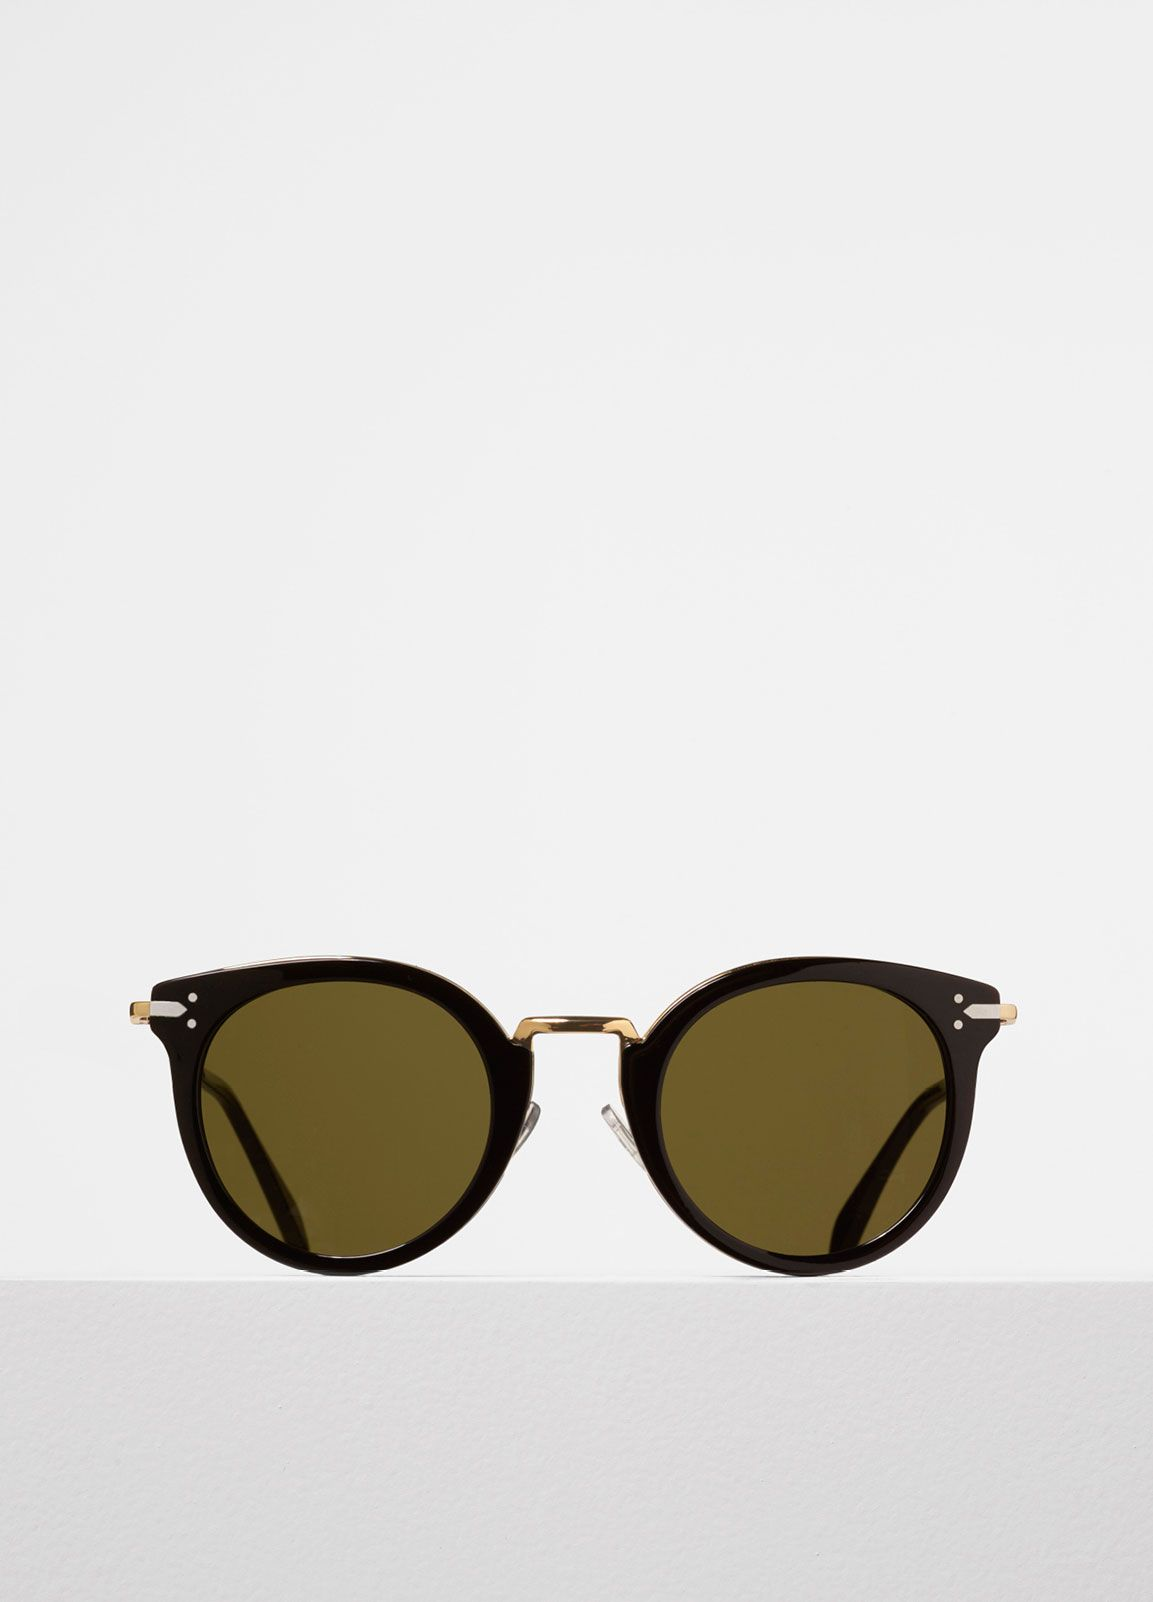 a03b89b359f51 Celine  Lea Sunglasses in Black Acetate and Metal with Green Lenses ...